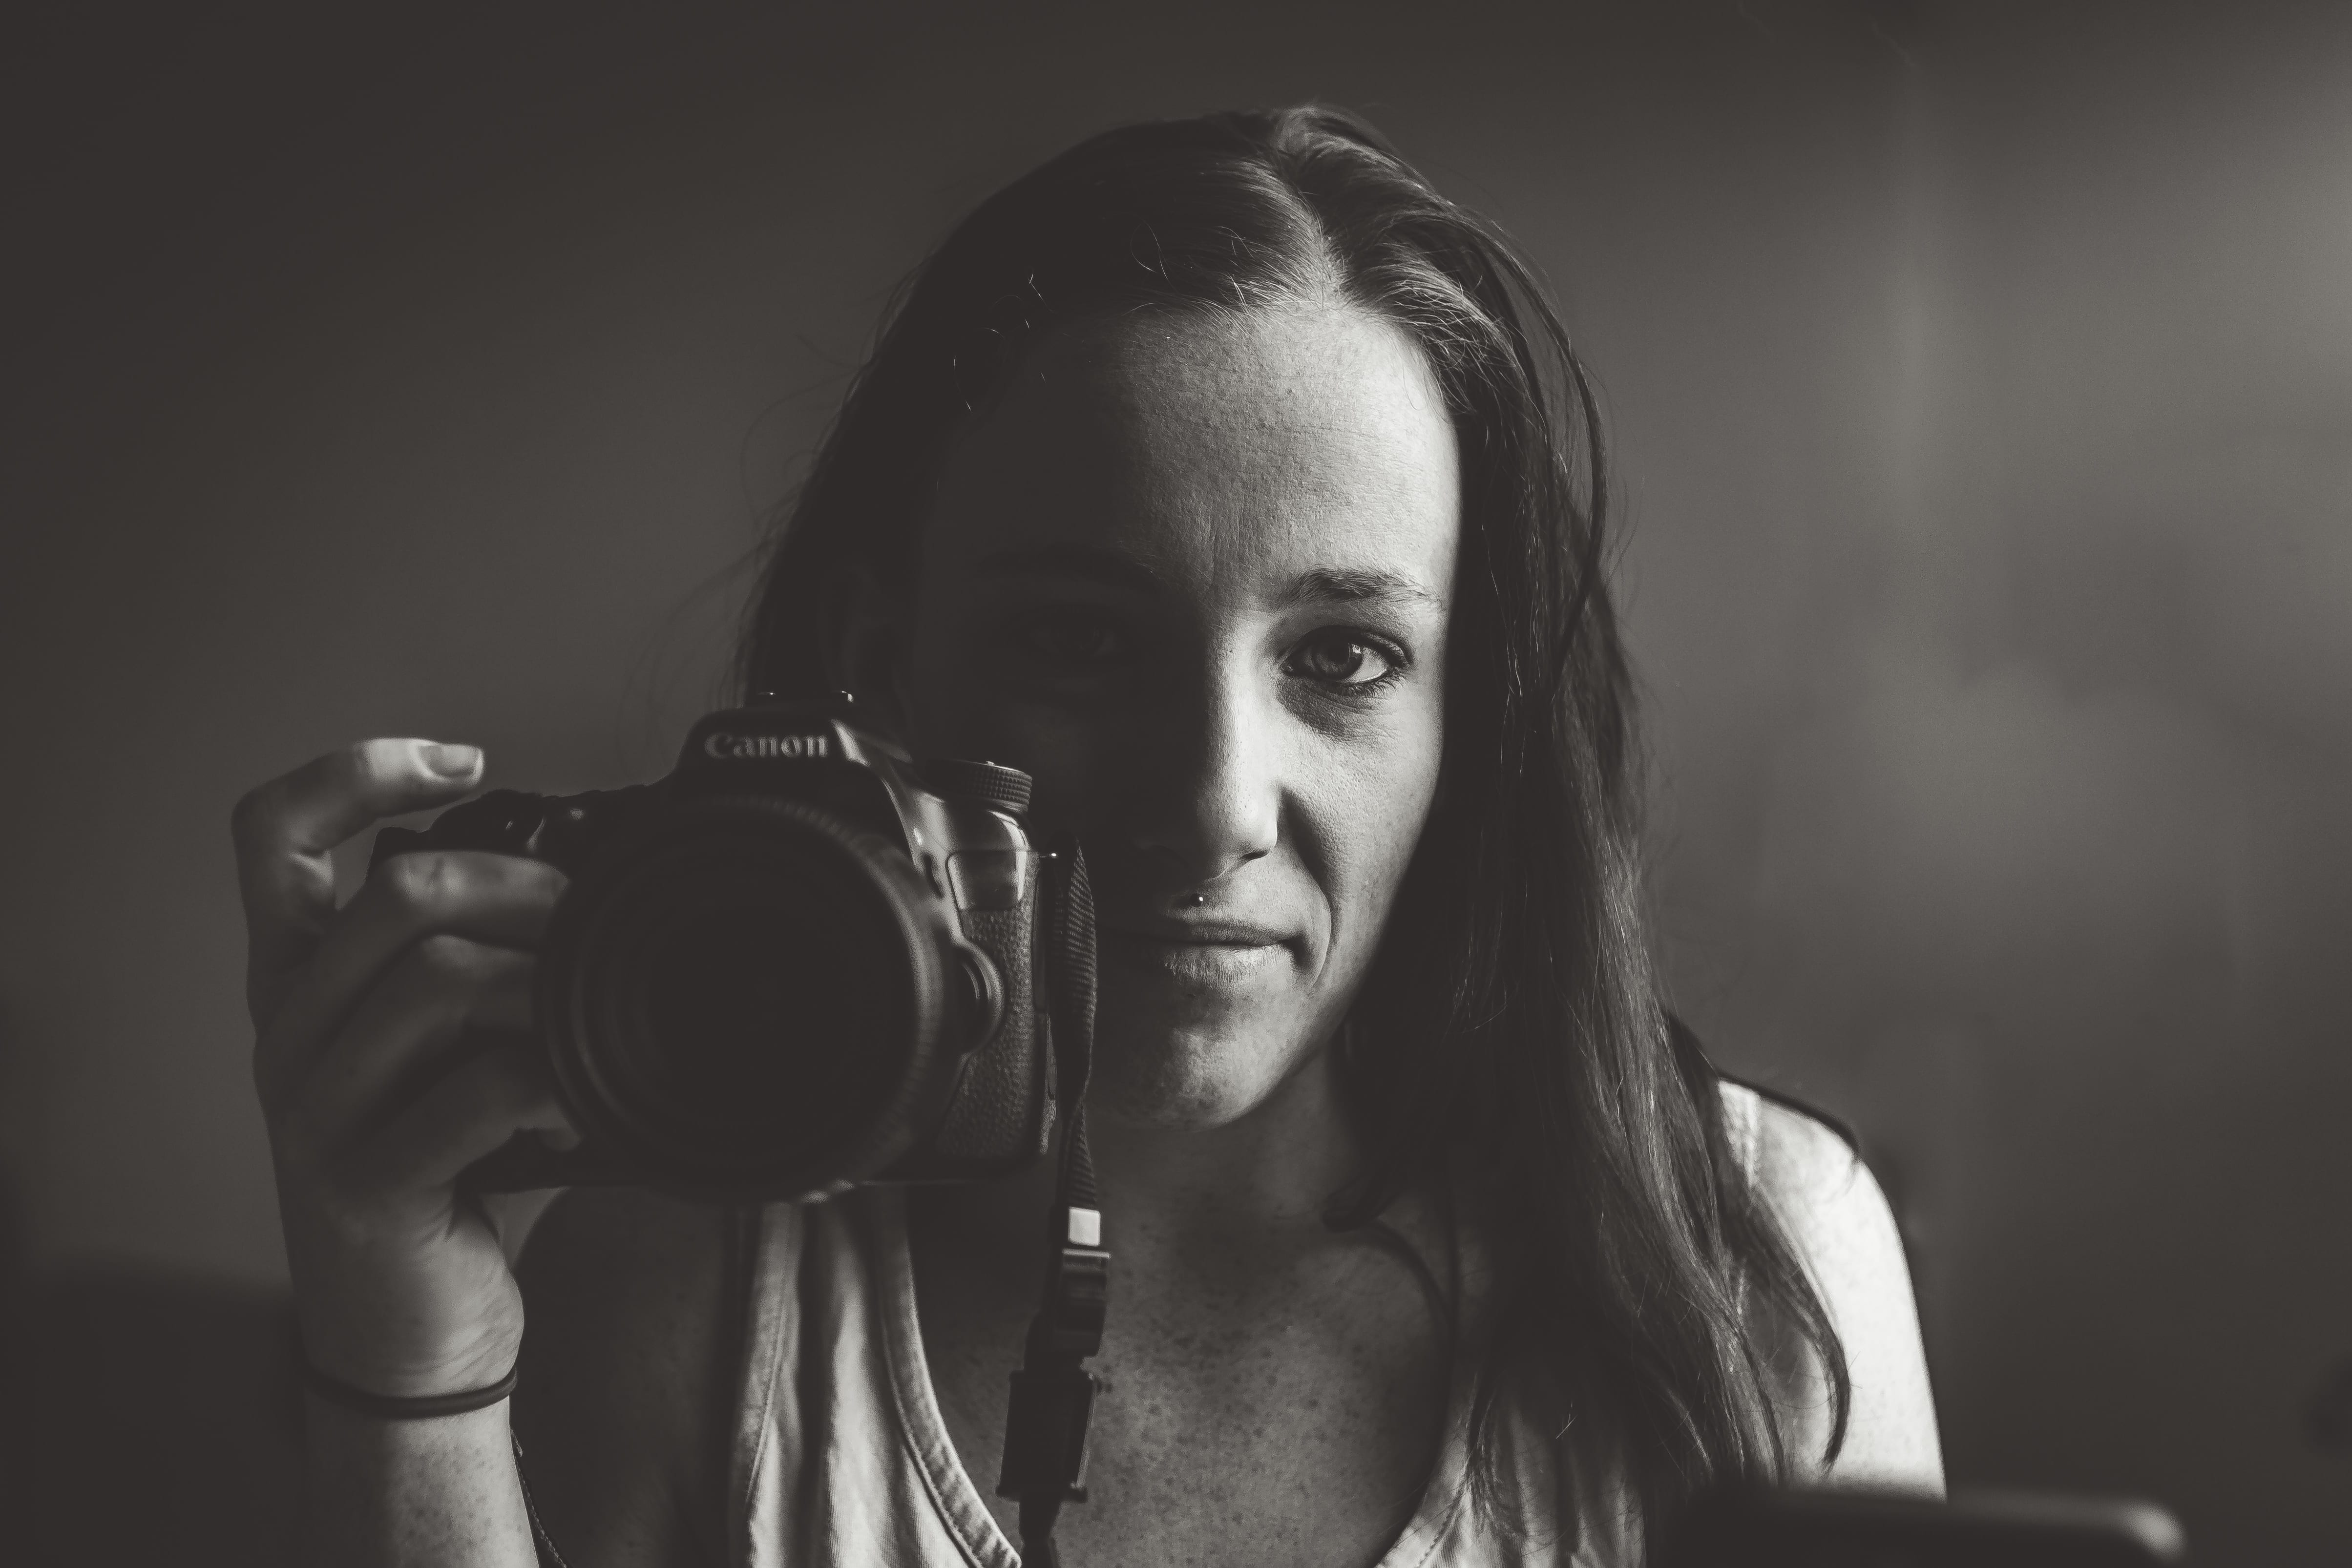 woman with camera self portrait